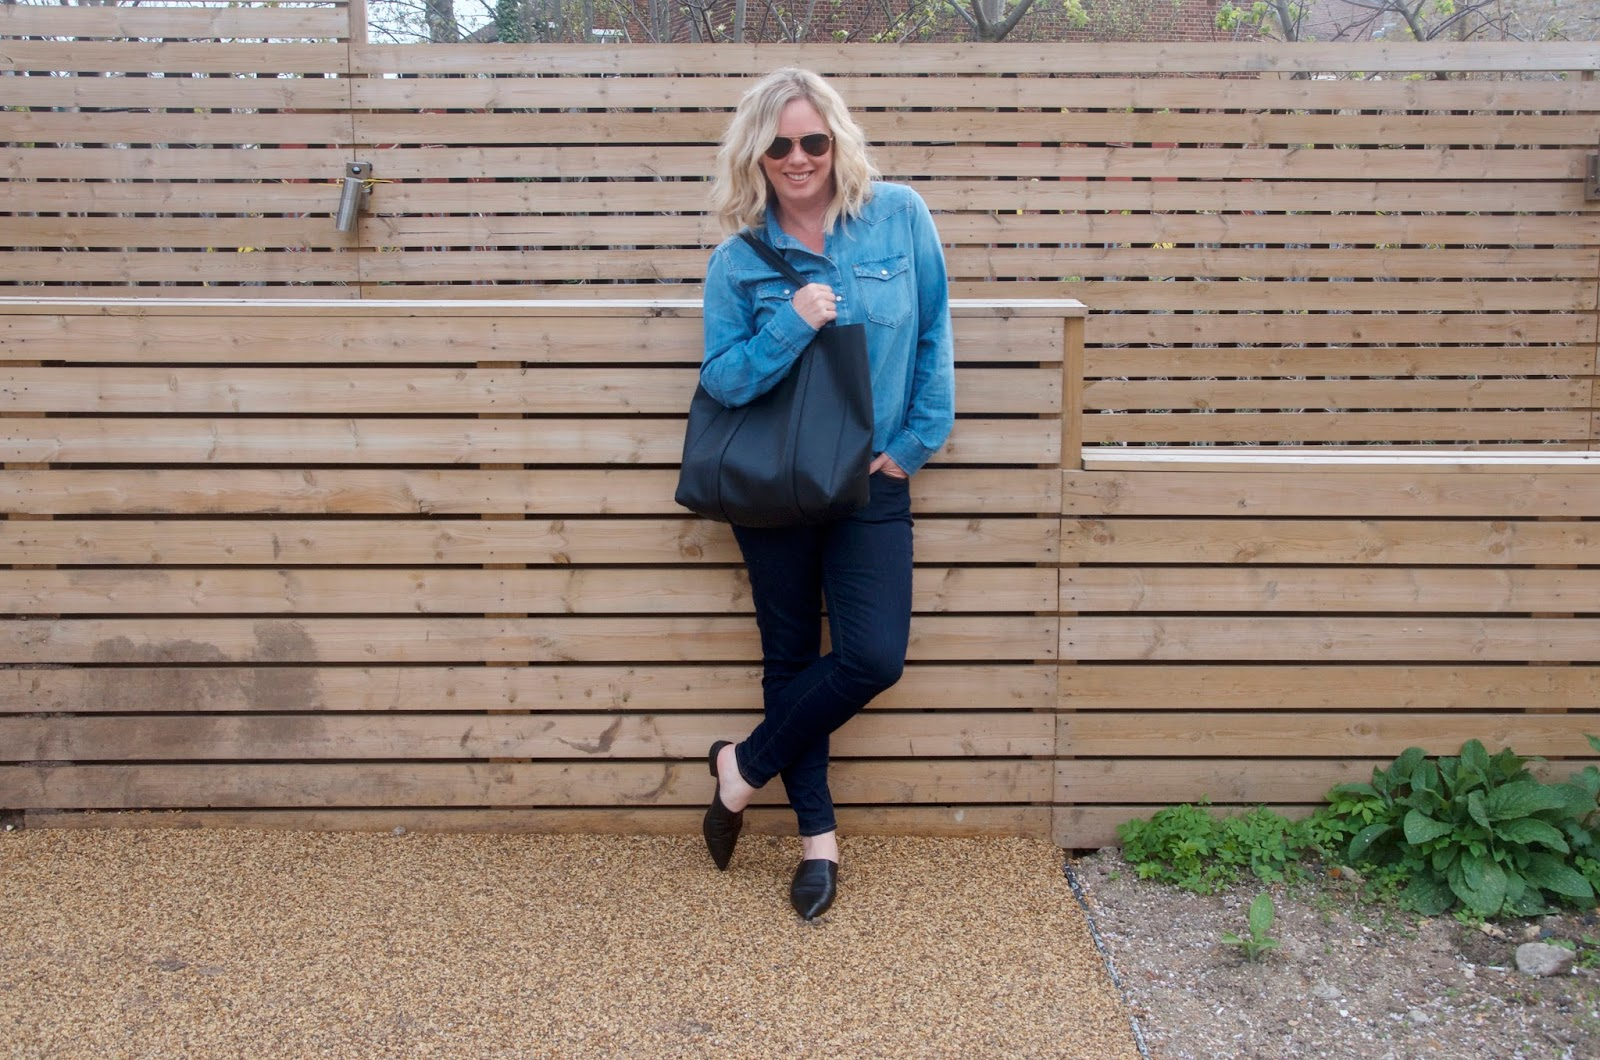 Denim shirt, dark denim jeans, black oversized tote bag, black pointed toe leather mules, gold aviator sunglasses and wooden wall